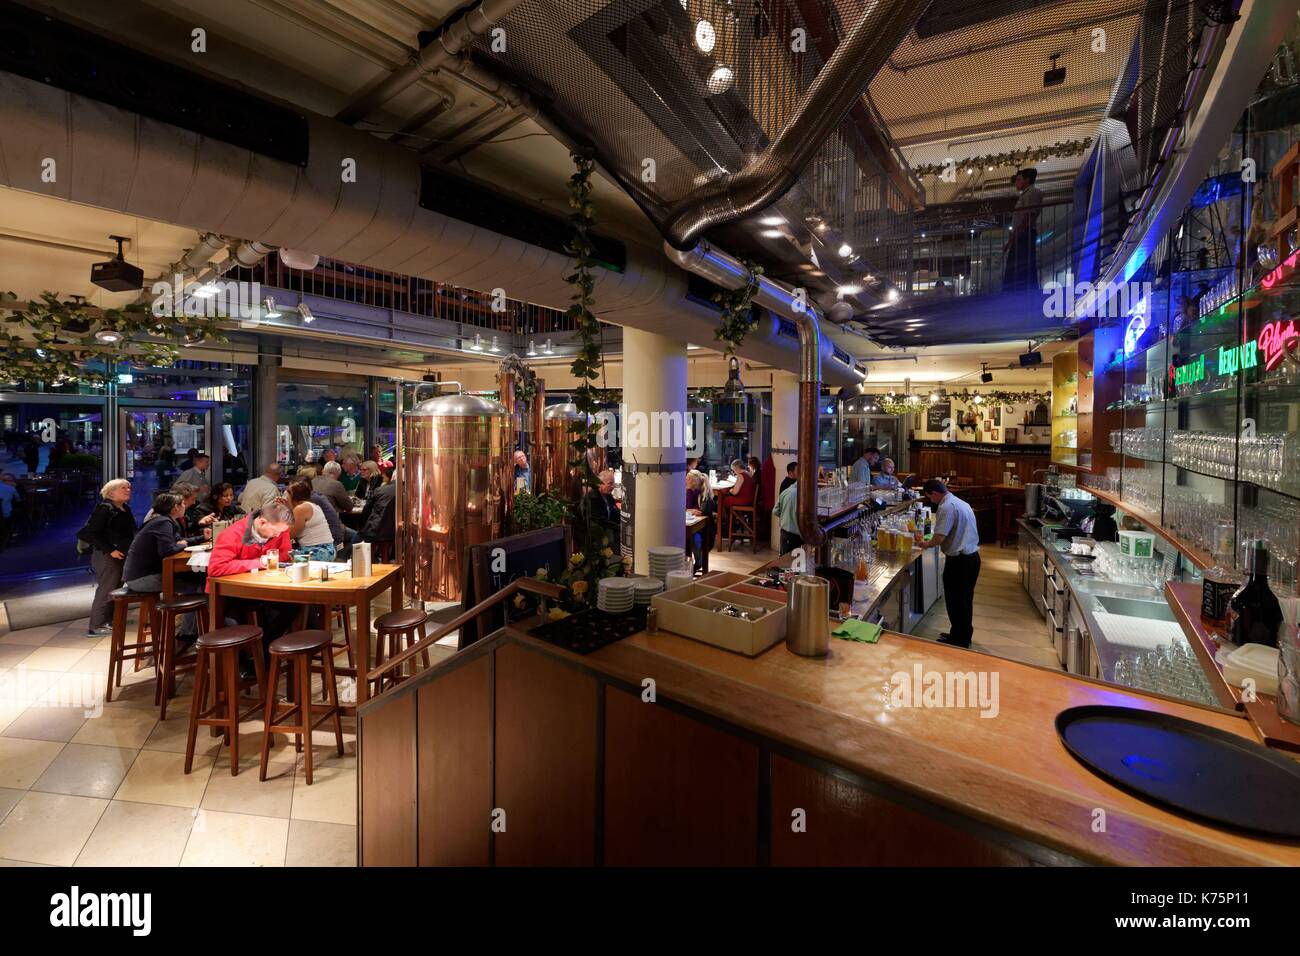 berlin tiergarten cafe stock photos berlin tiergarten cafe stock images alamy. Black Bedroom Furniture Sets. Home Design Ideas